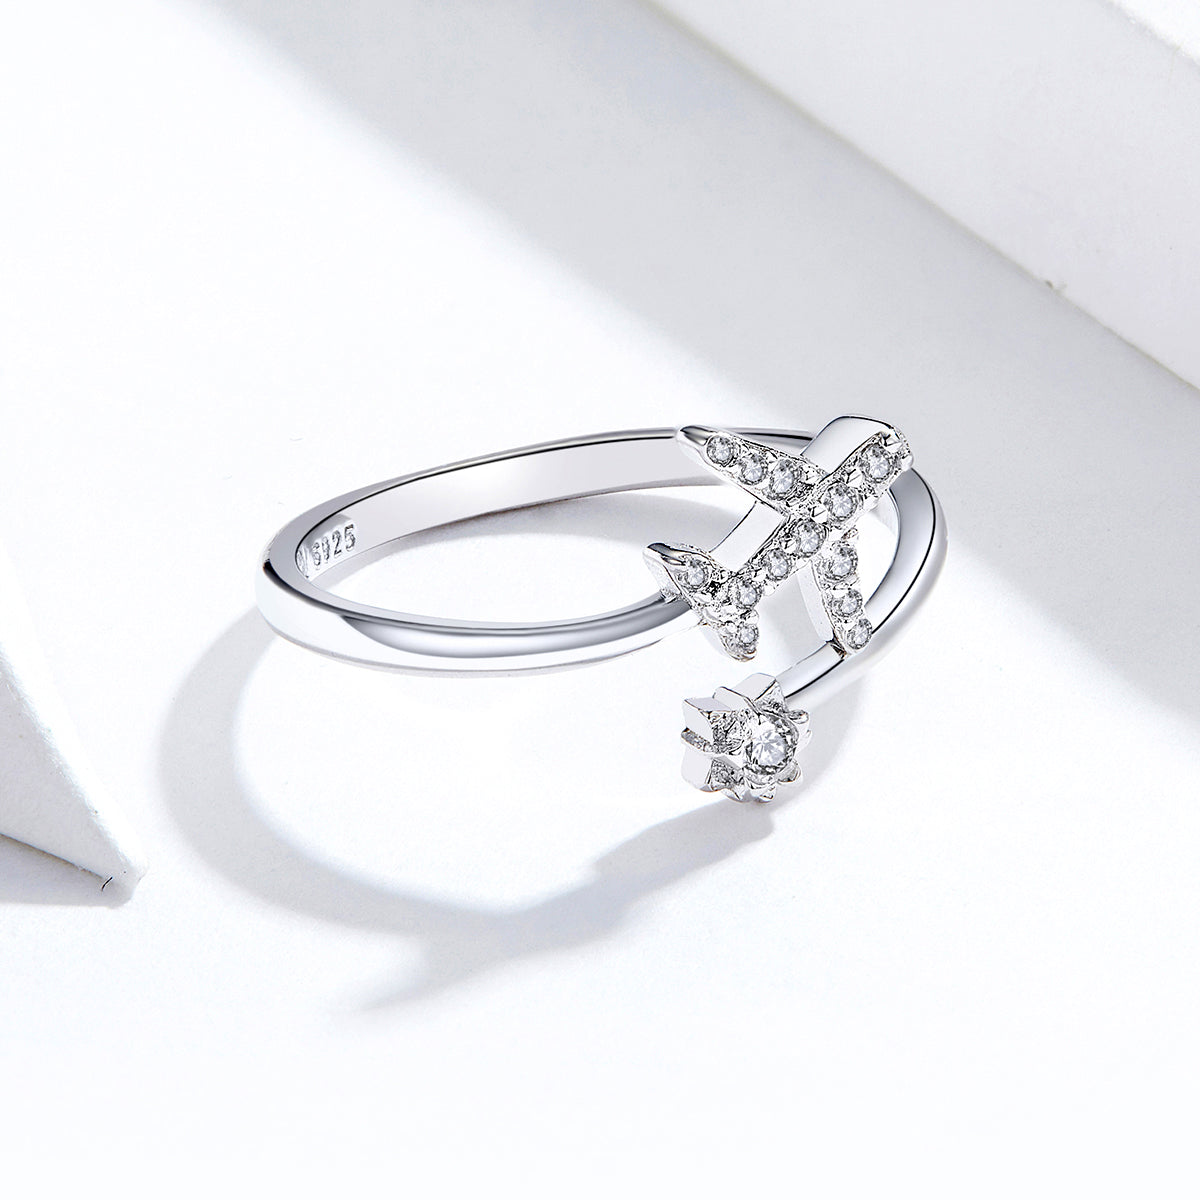 S925 sterling silver distant ring plane shape ring white gold plated zircon ring